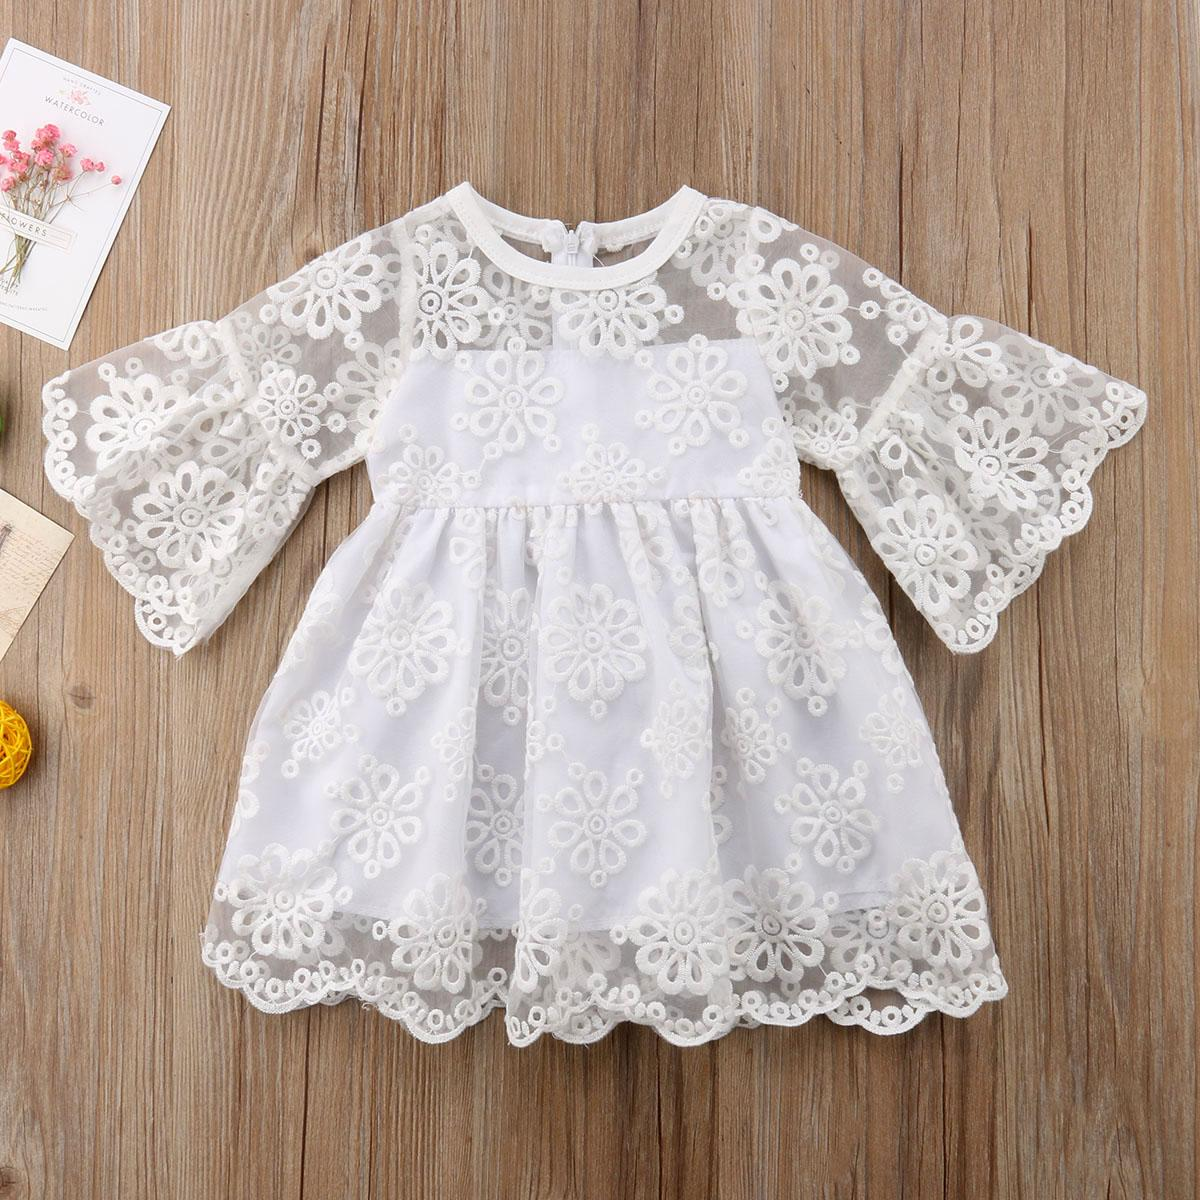 Casual Kids Baby Girls Dress Princess Lace Floral Party Bridesmaid Dress Clothes